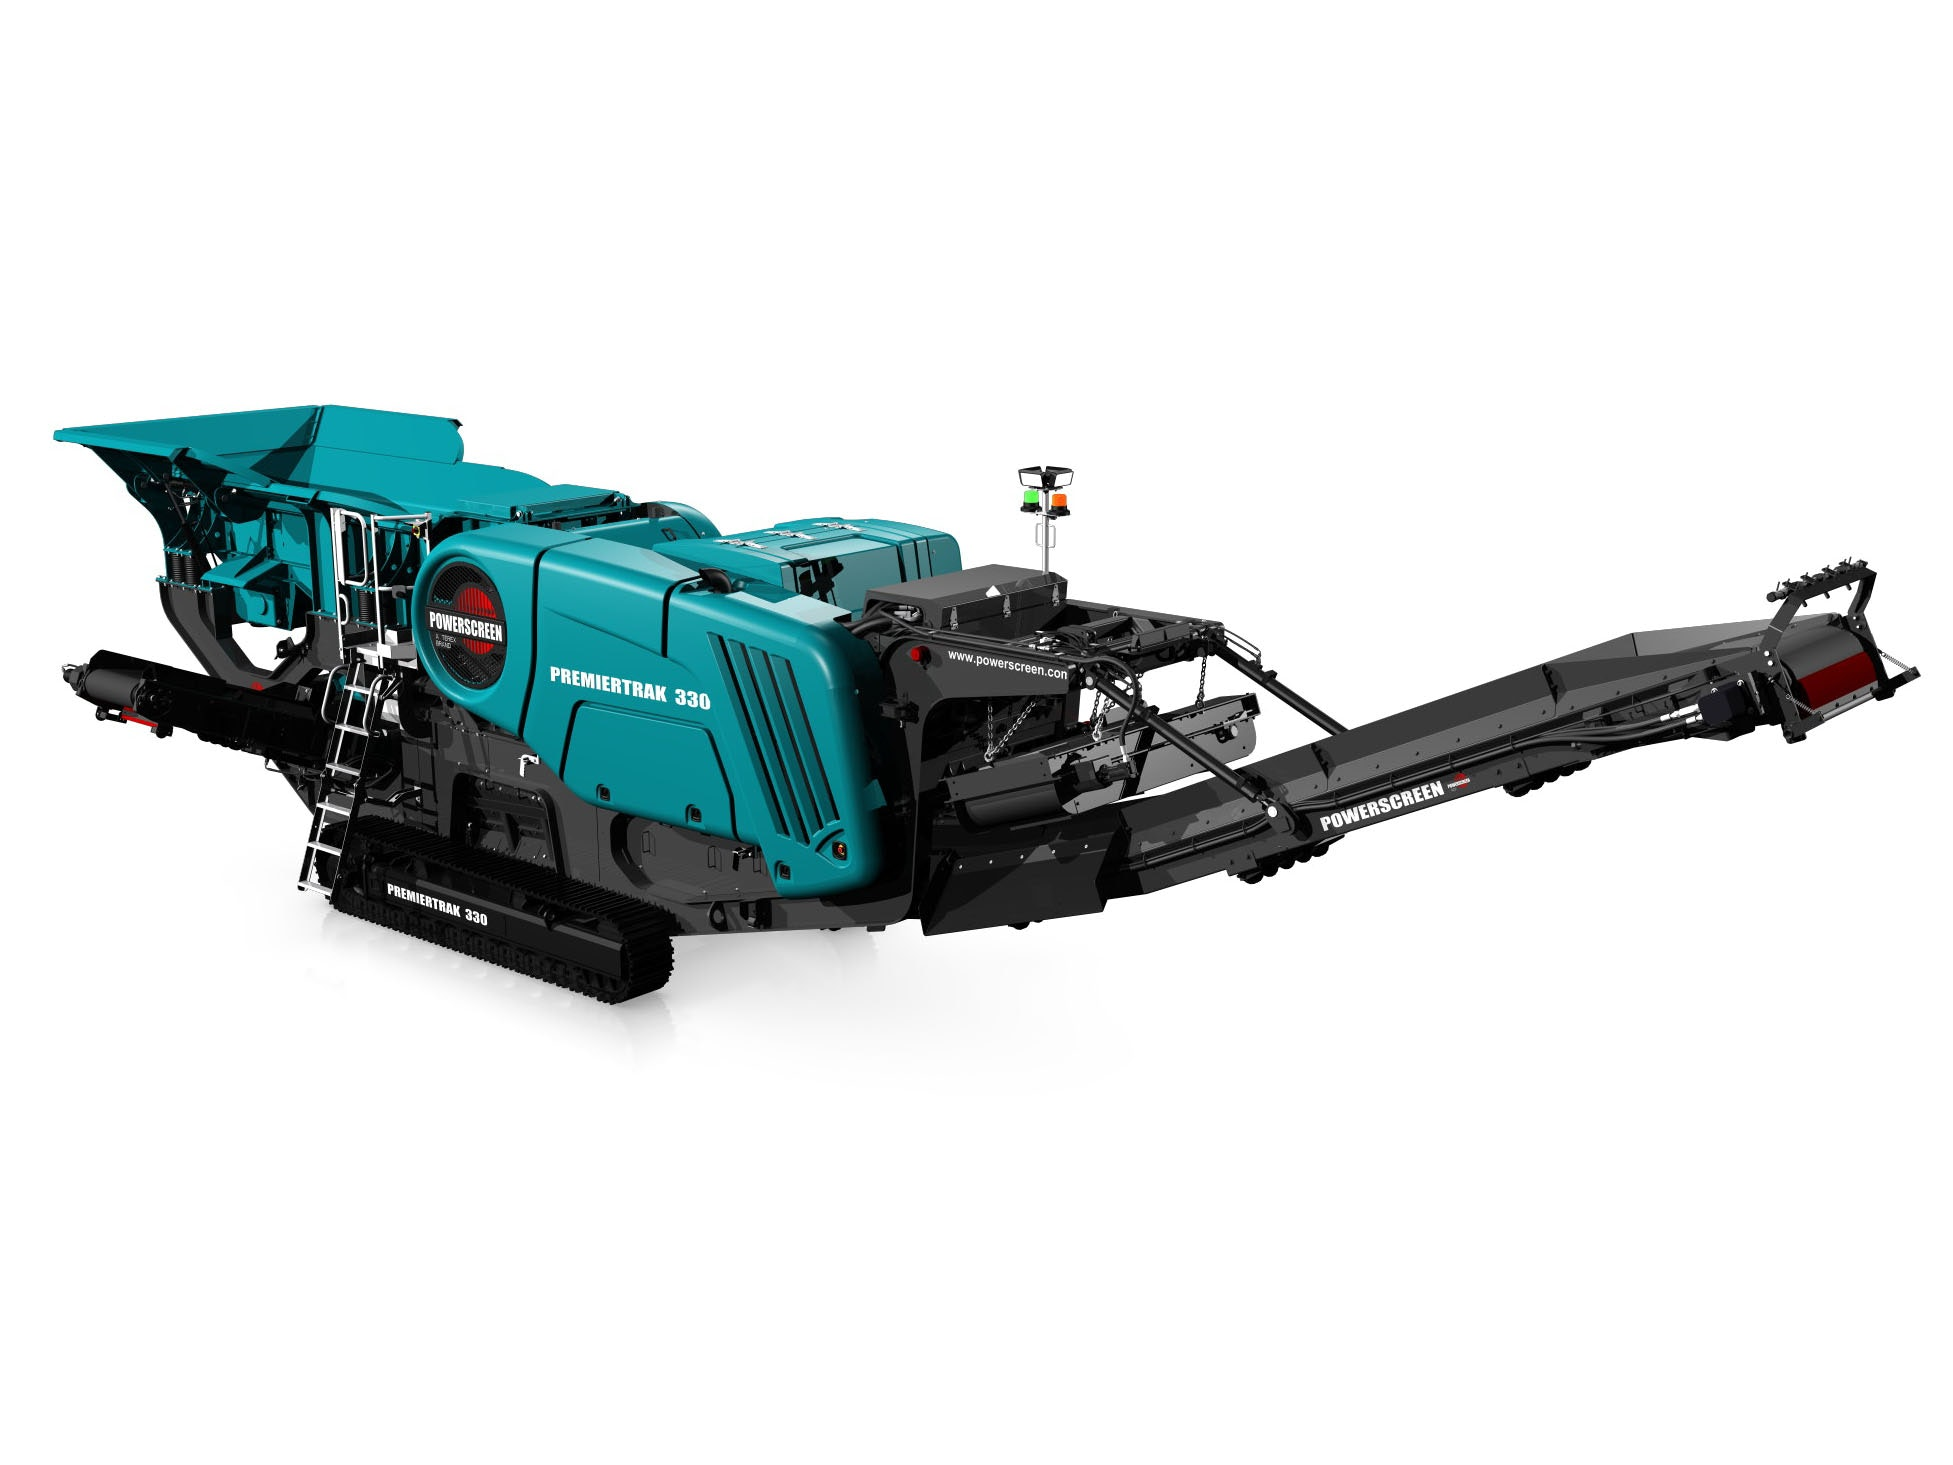 Premiertrak330renderedimage New